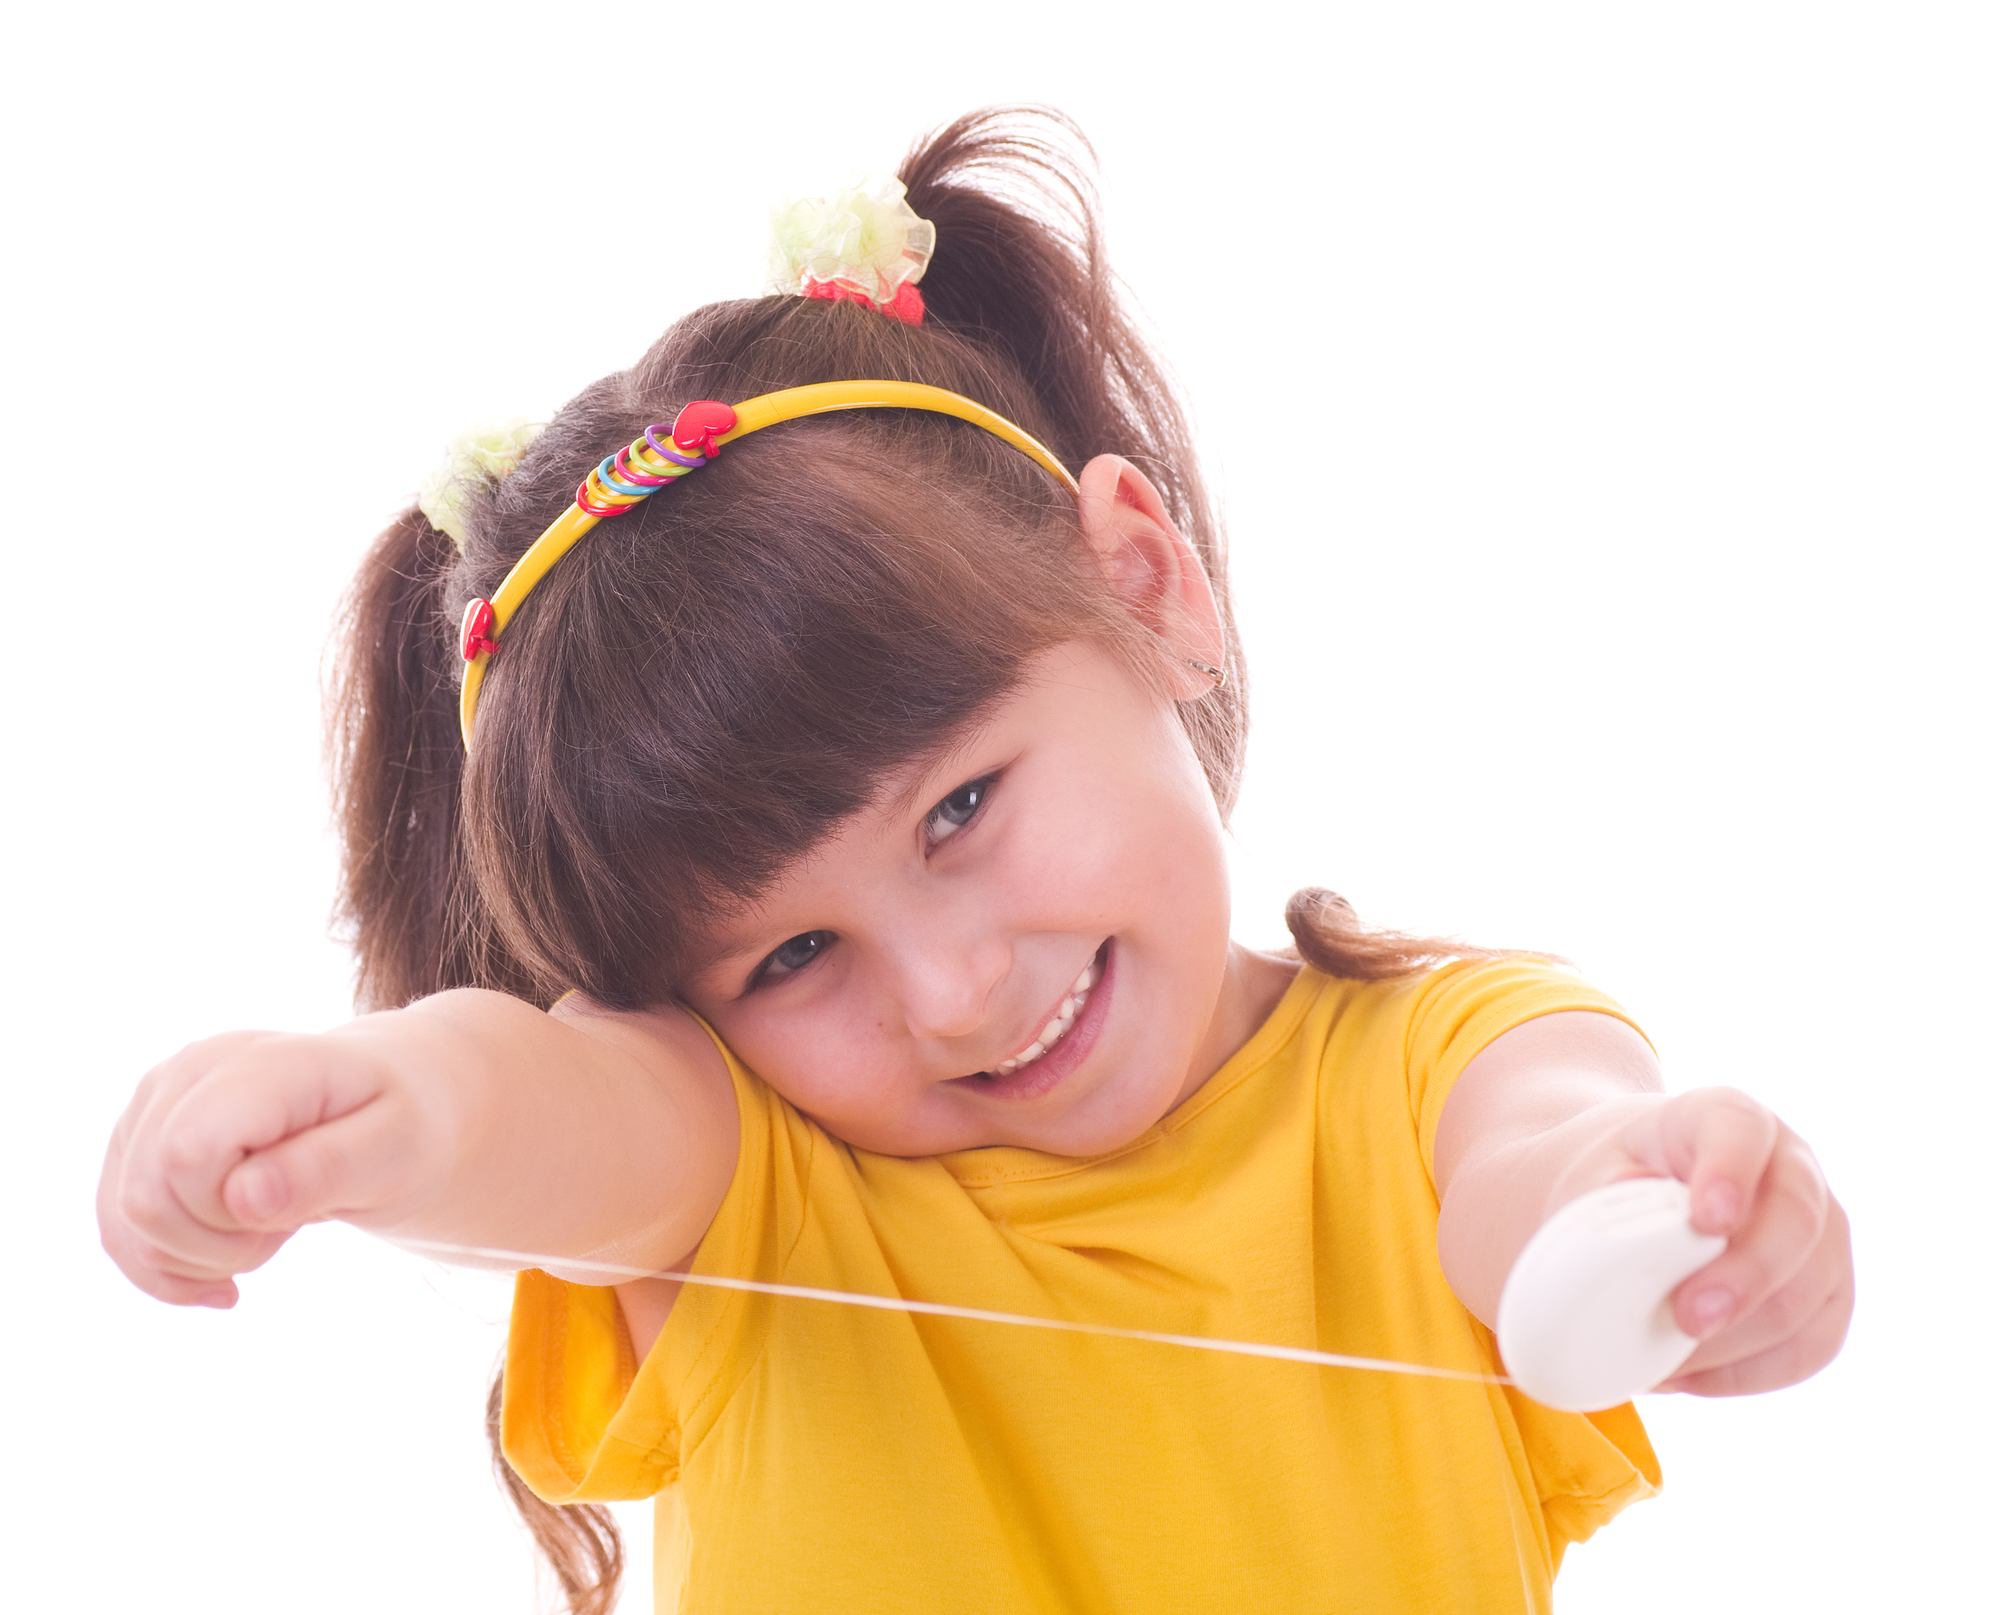 Does my child need a pediatric dentist in Boynton Beach?